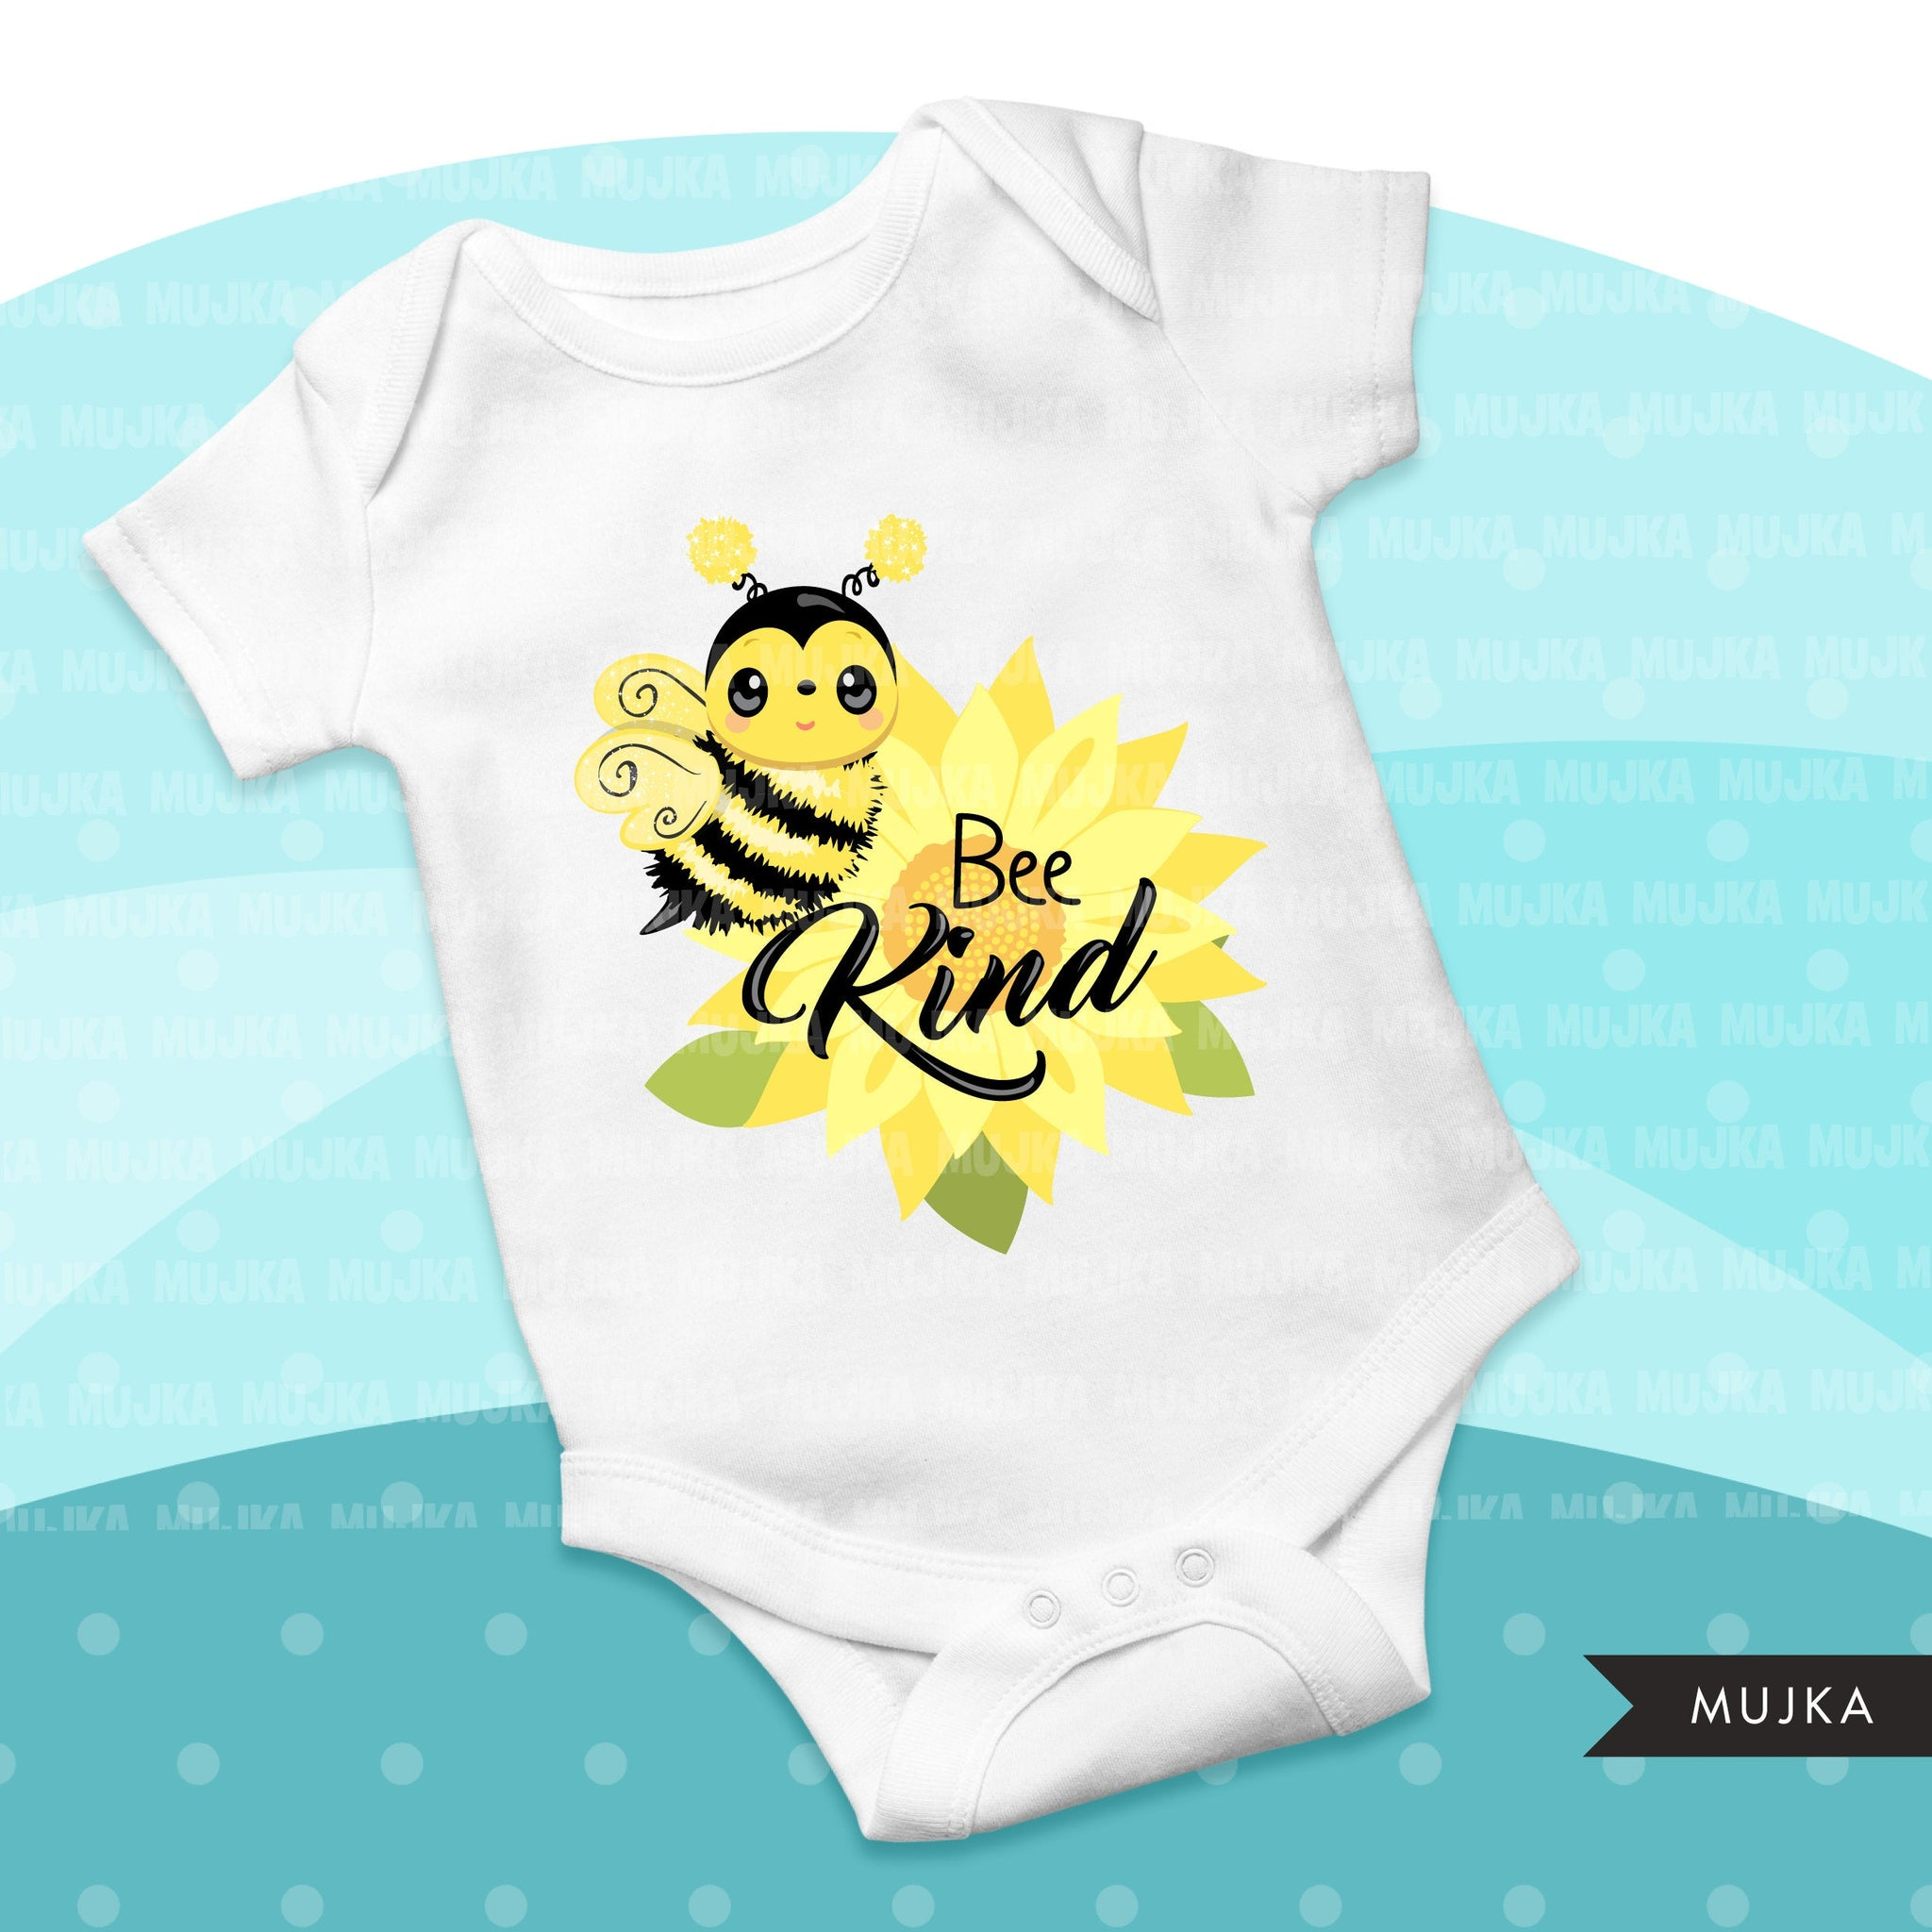 Bee Kind clipart, Bee kind sublimation designs digital download, Easter spring shirt, Bee Shirt Png, PNG files for cricut downloads